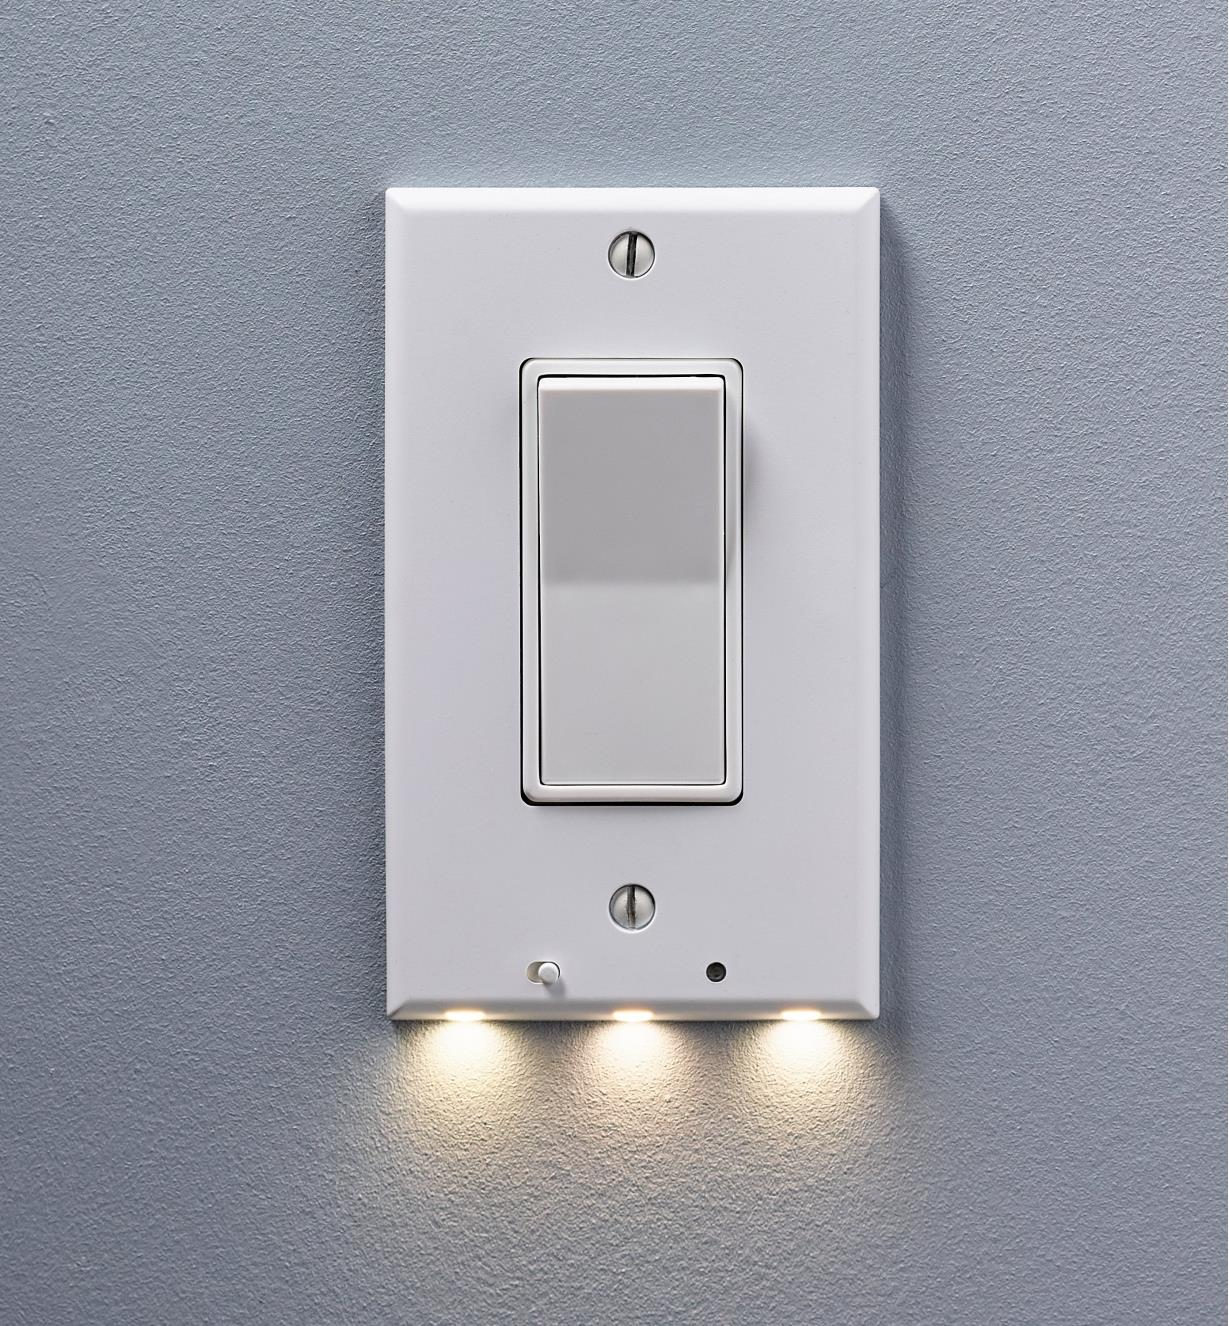 99W0273 - LED Rocker Switch Cover Plate